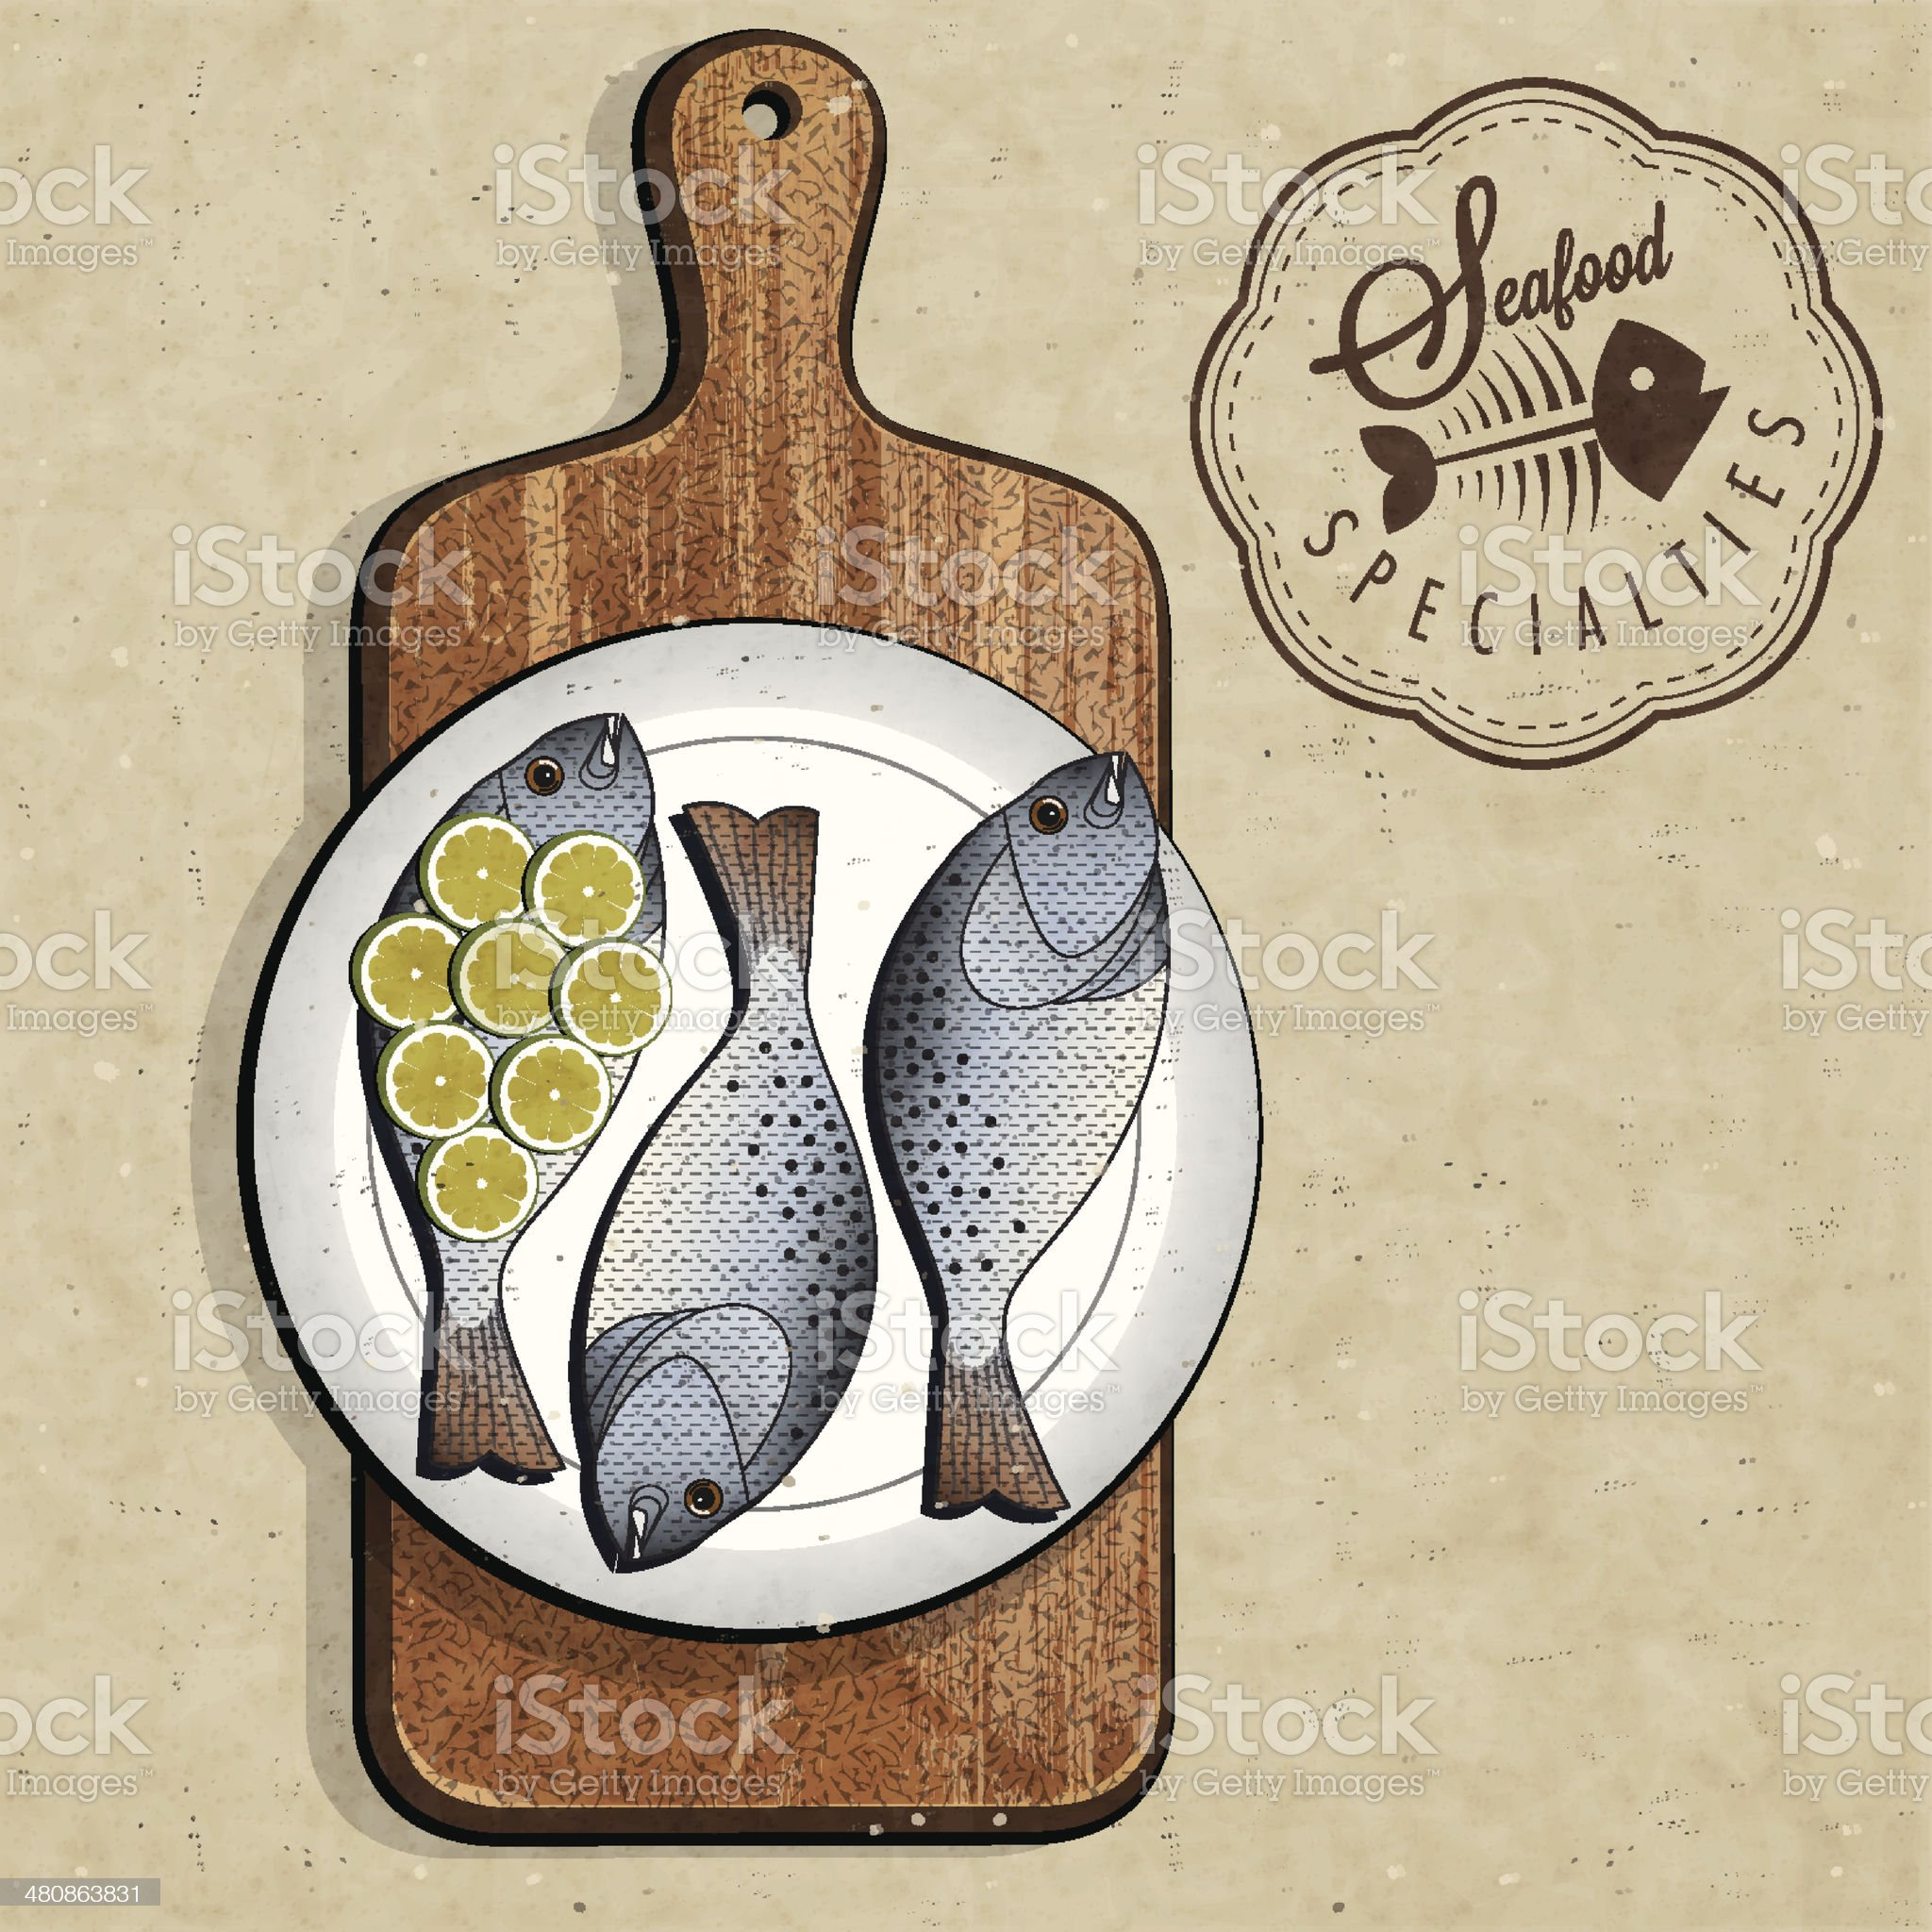 Retro vintage style Fish specialties with Cutting Board. royalty-free stock vector art